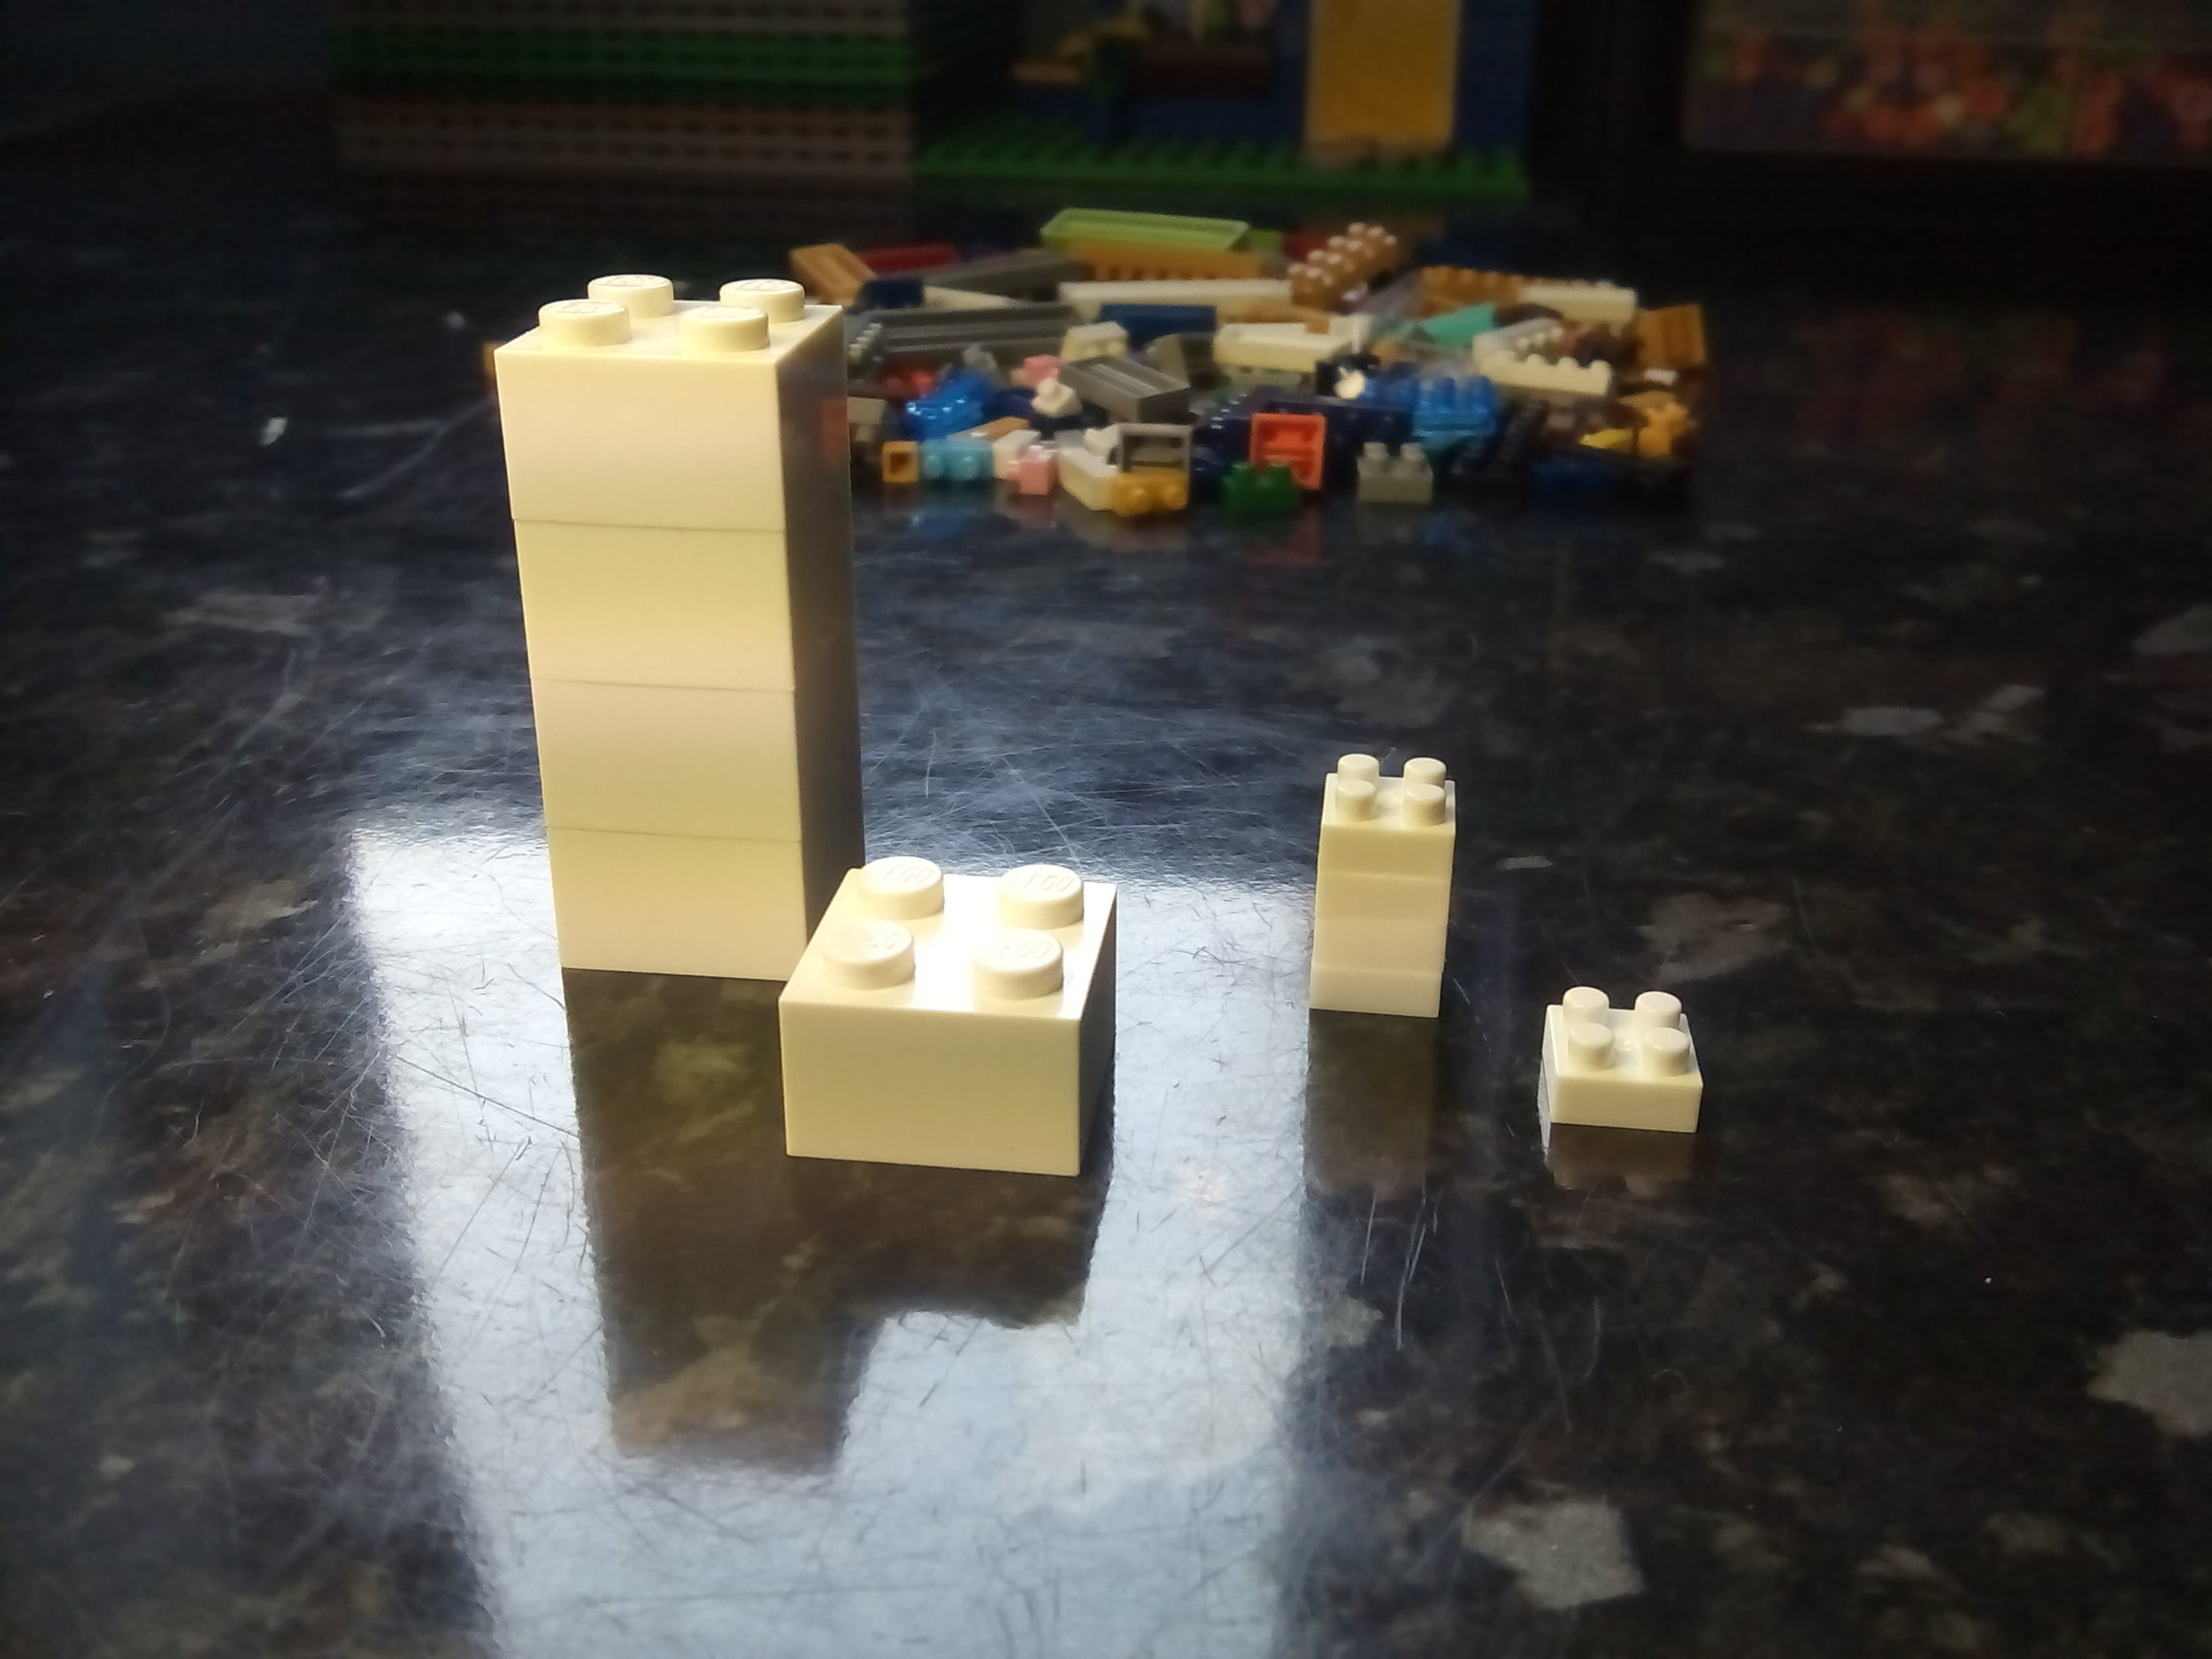 Lego-Nanoblock comparison